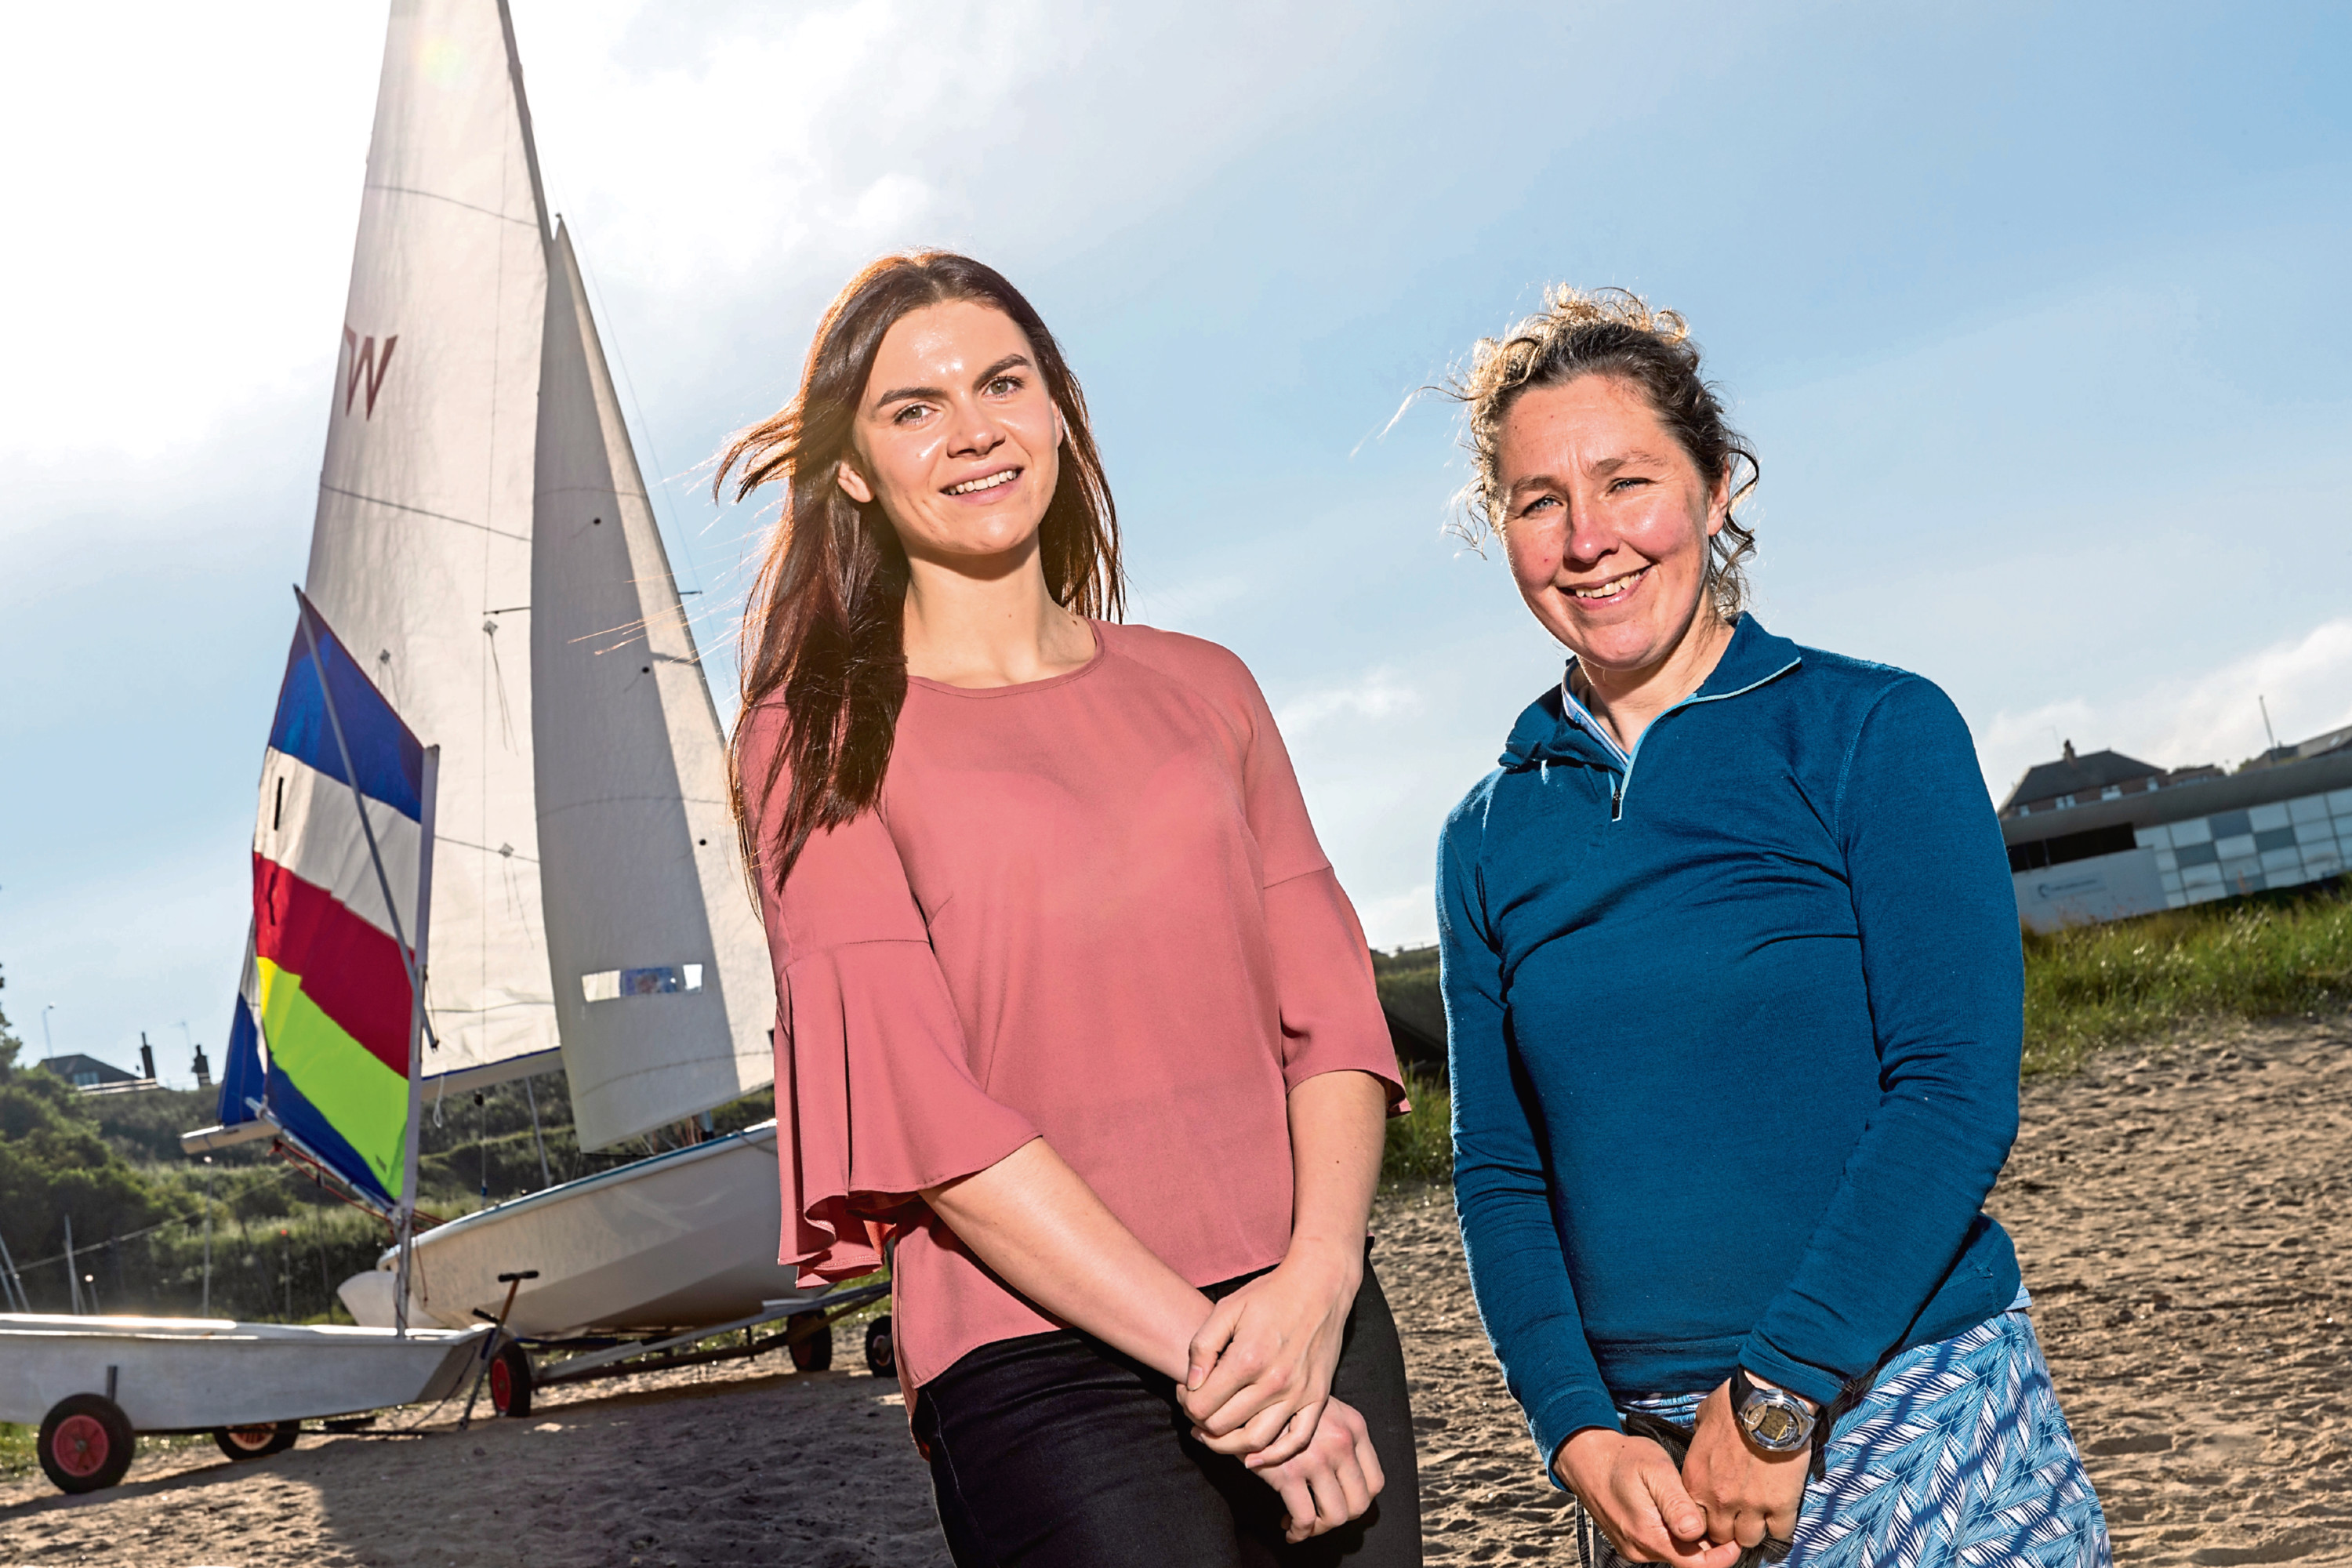 Kimberly Morrison of CALA Homes and Angie Fraser of Aberdeenshire Sailing Trust